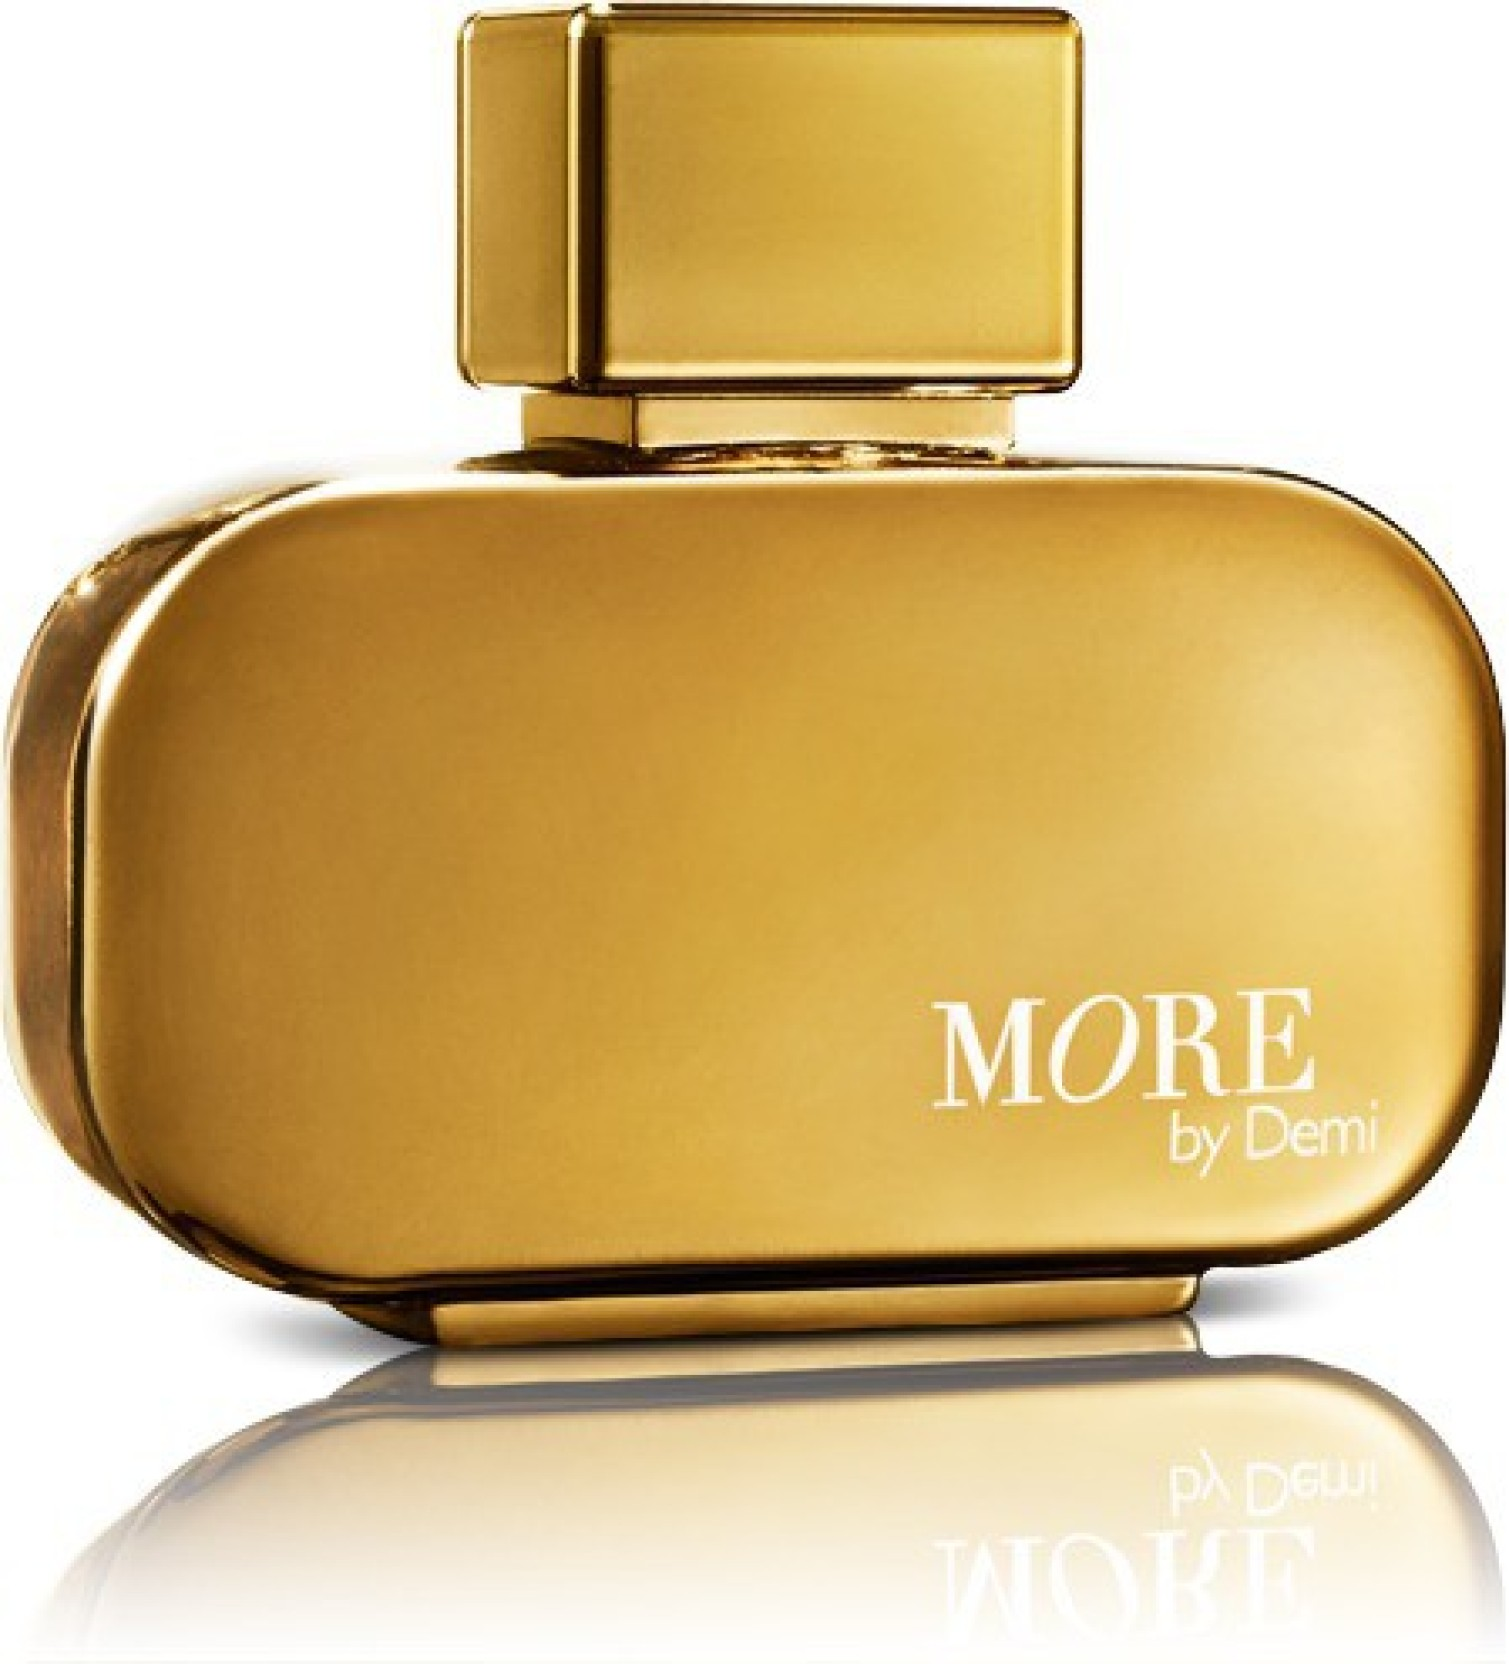 Buy Oriflame Sweden More By Demi Eau De Parfum 50 Ml Online In Tenderly Miss Giordani Vivacity Perfumed Body Lotion Share